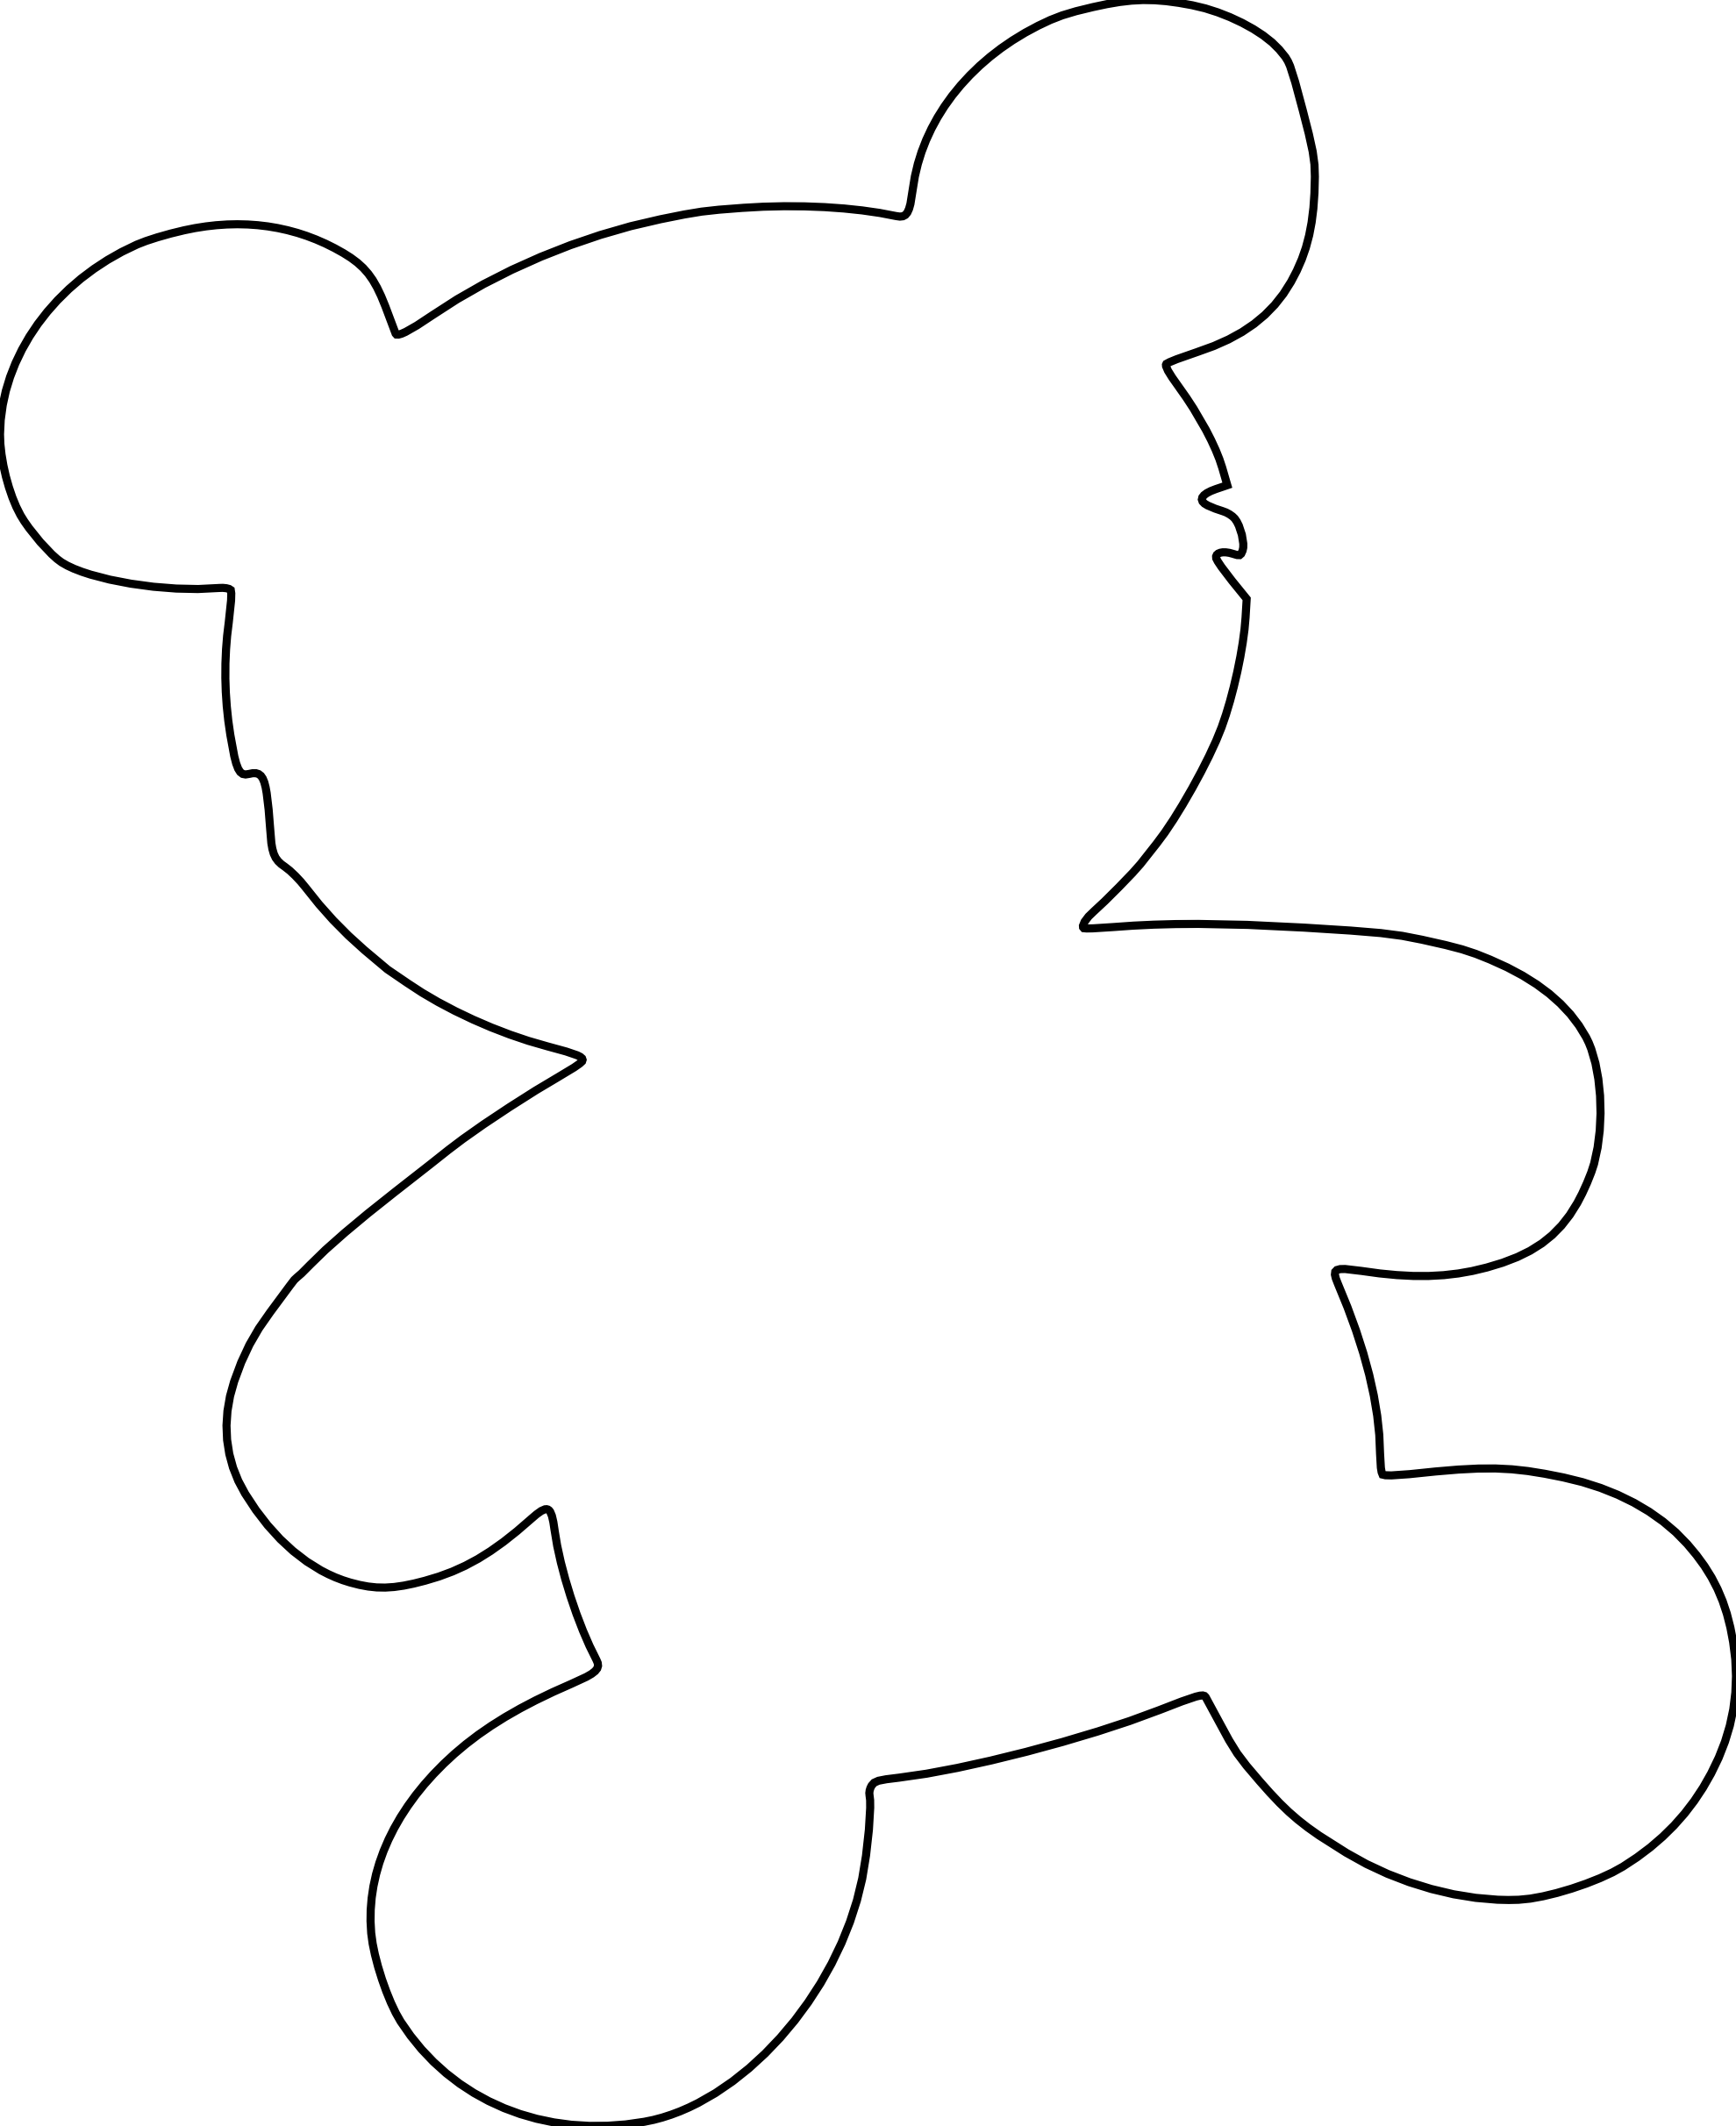 Bear Clipart Black And White Clipart Panda Free Clipart Images Teddy Bear Coloring Pages Bear Coloring Pages Teddy Bear Outline